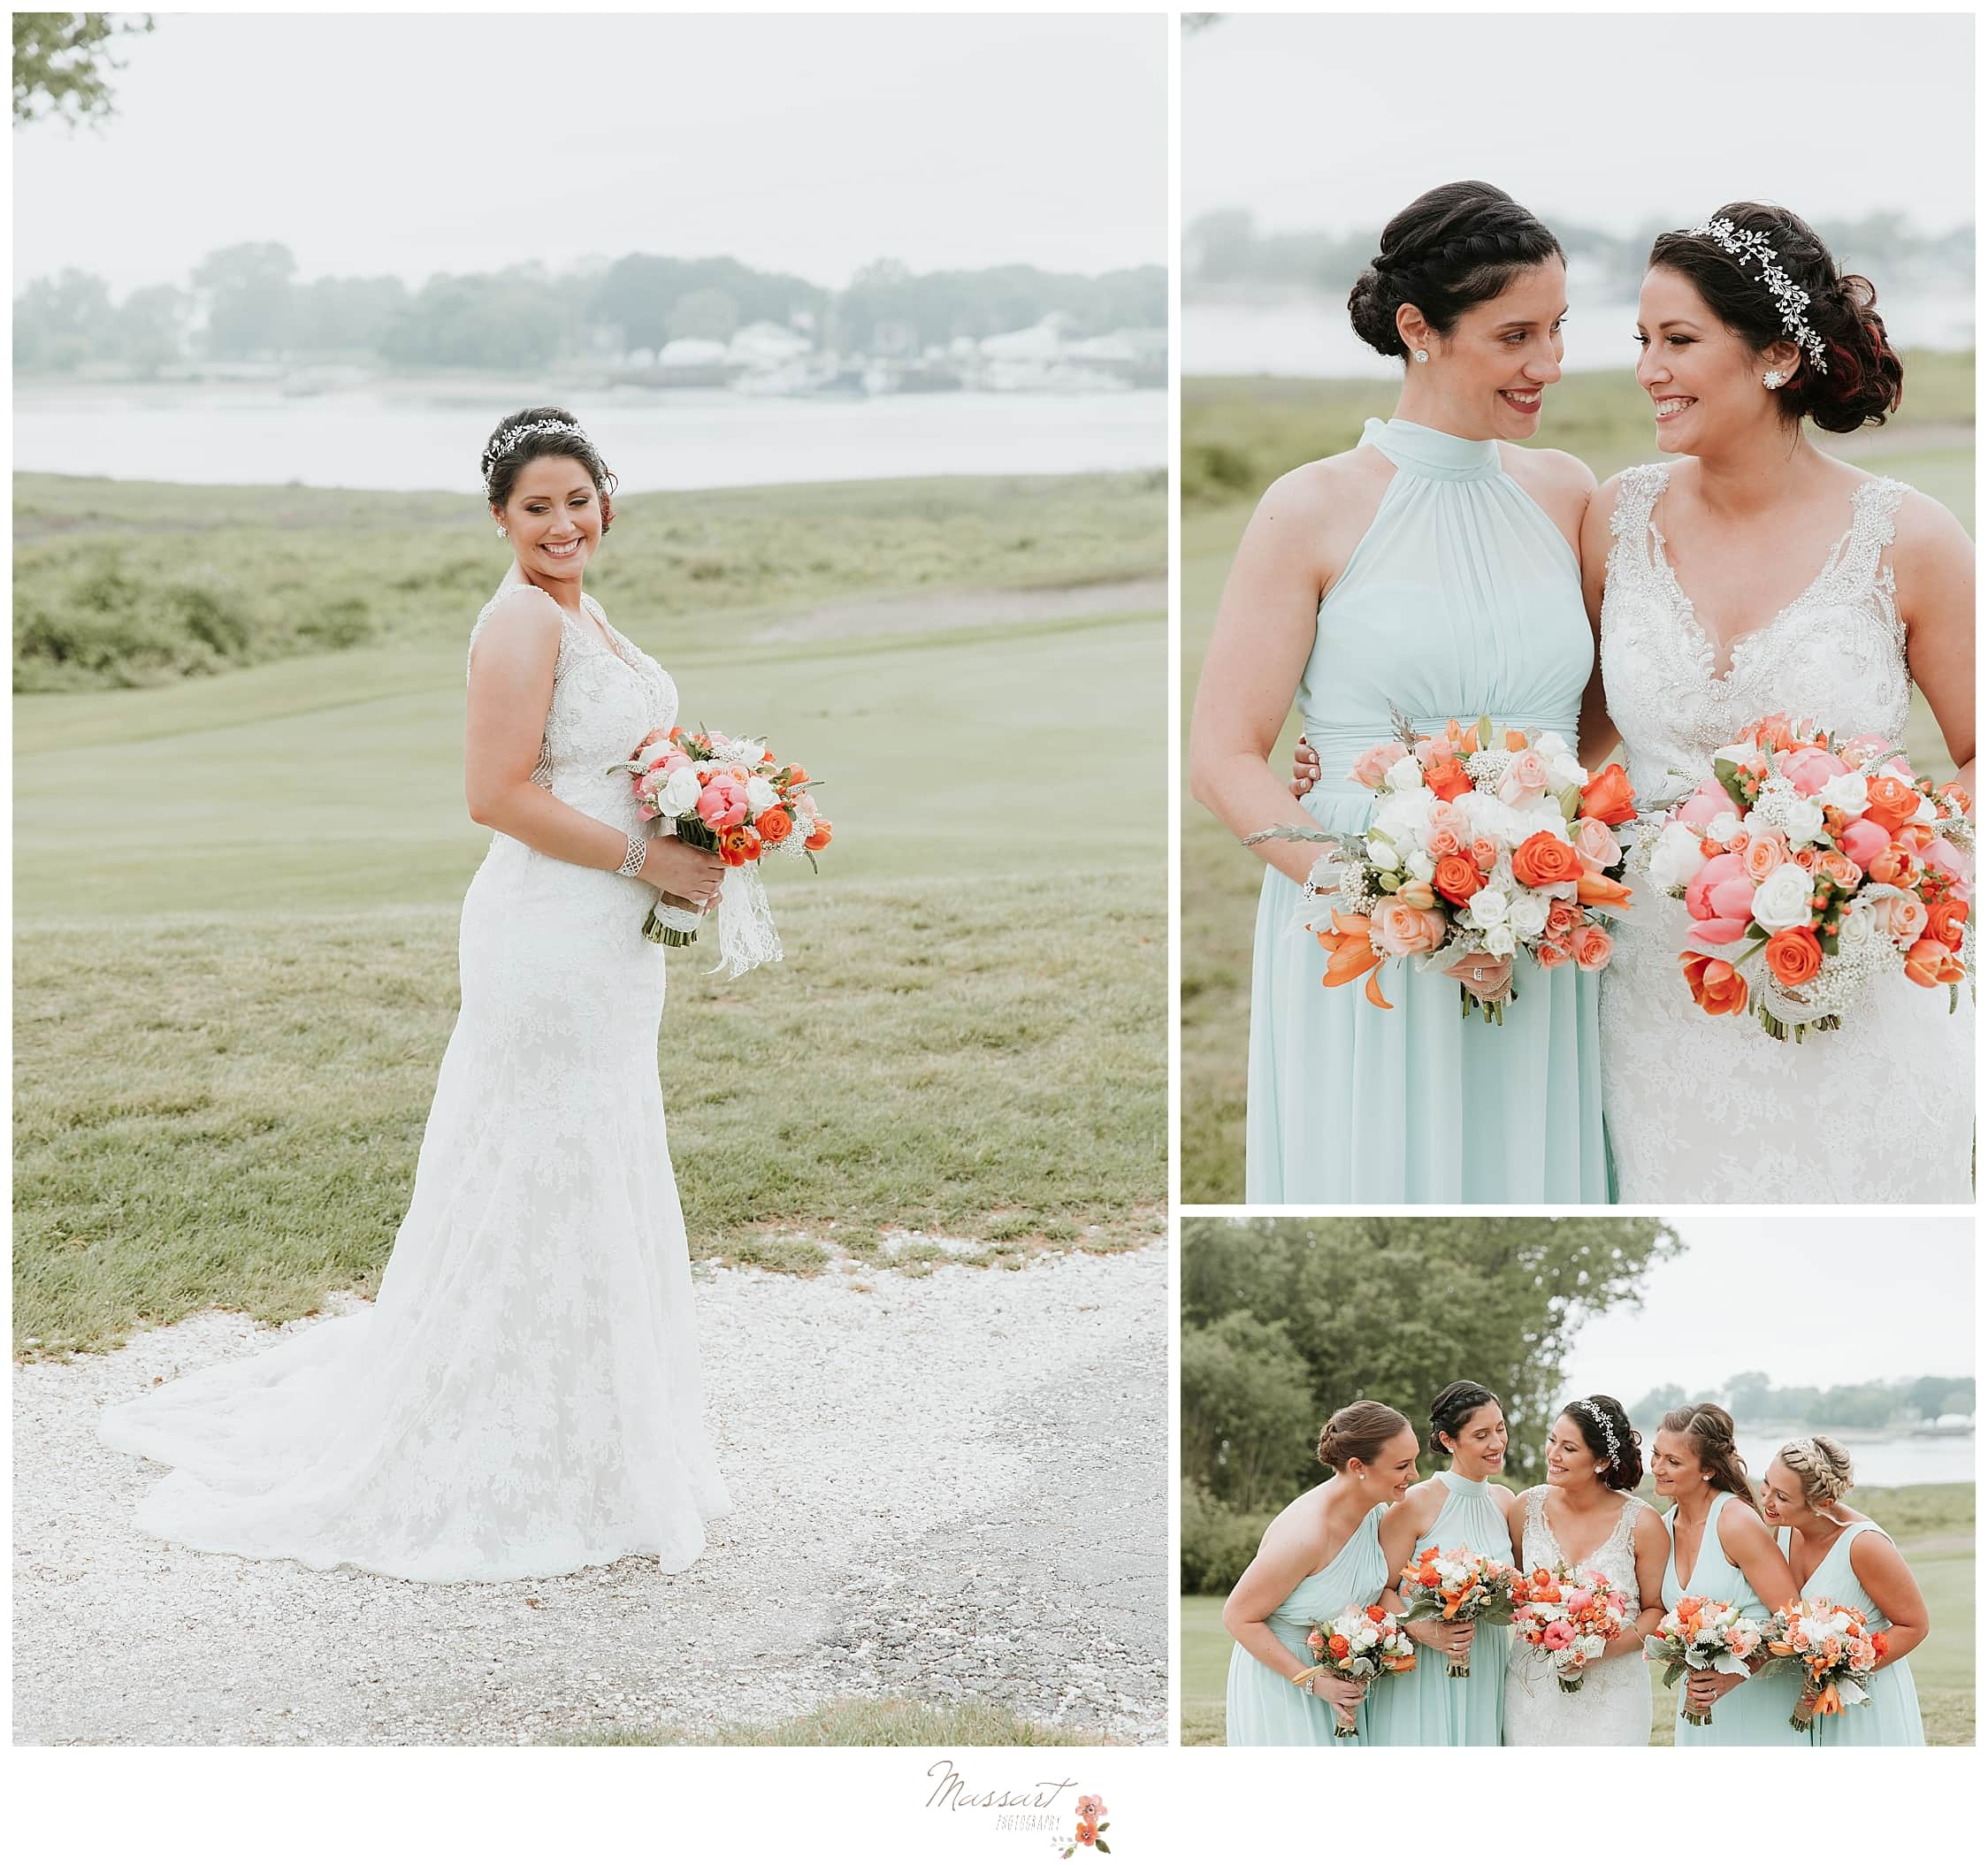 Bridal portrait with coral wedding bouquet and bridesmaids in teal dresses with coral floral bouquets photographed by RI, MA and CT wedding photographers Massart Photography.